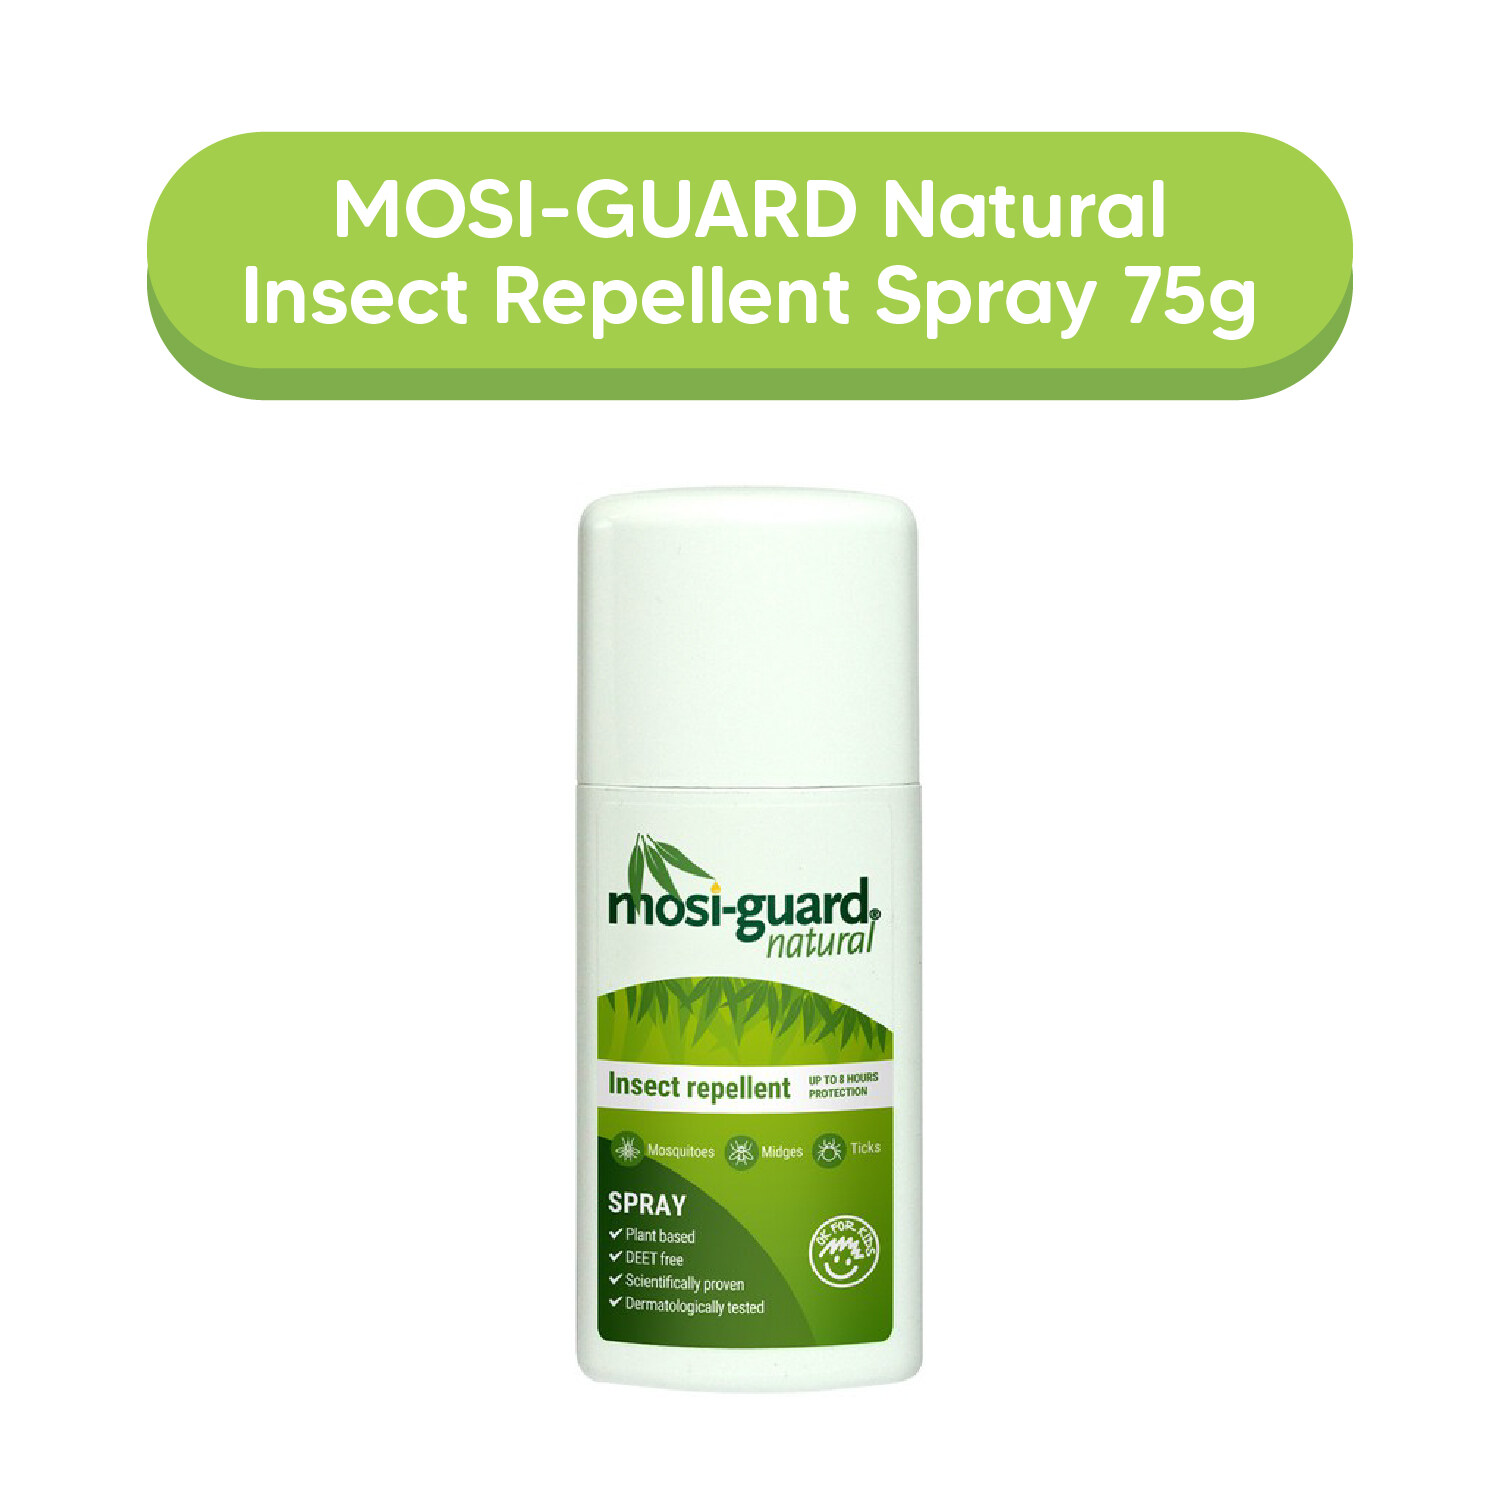 MOSI-GUARD Natural Insect Repellent Spray 75g